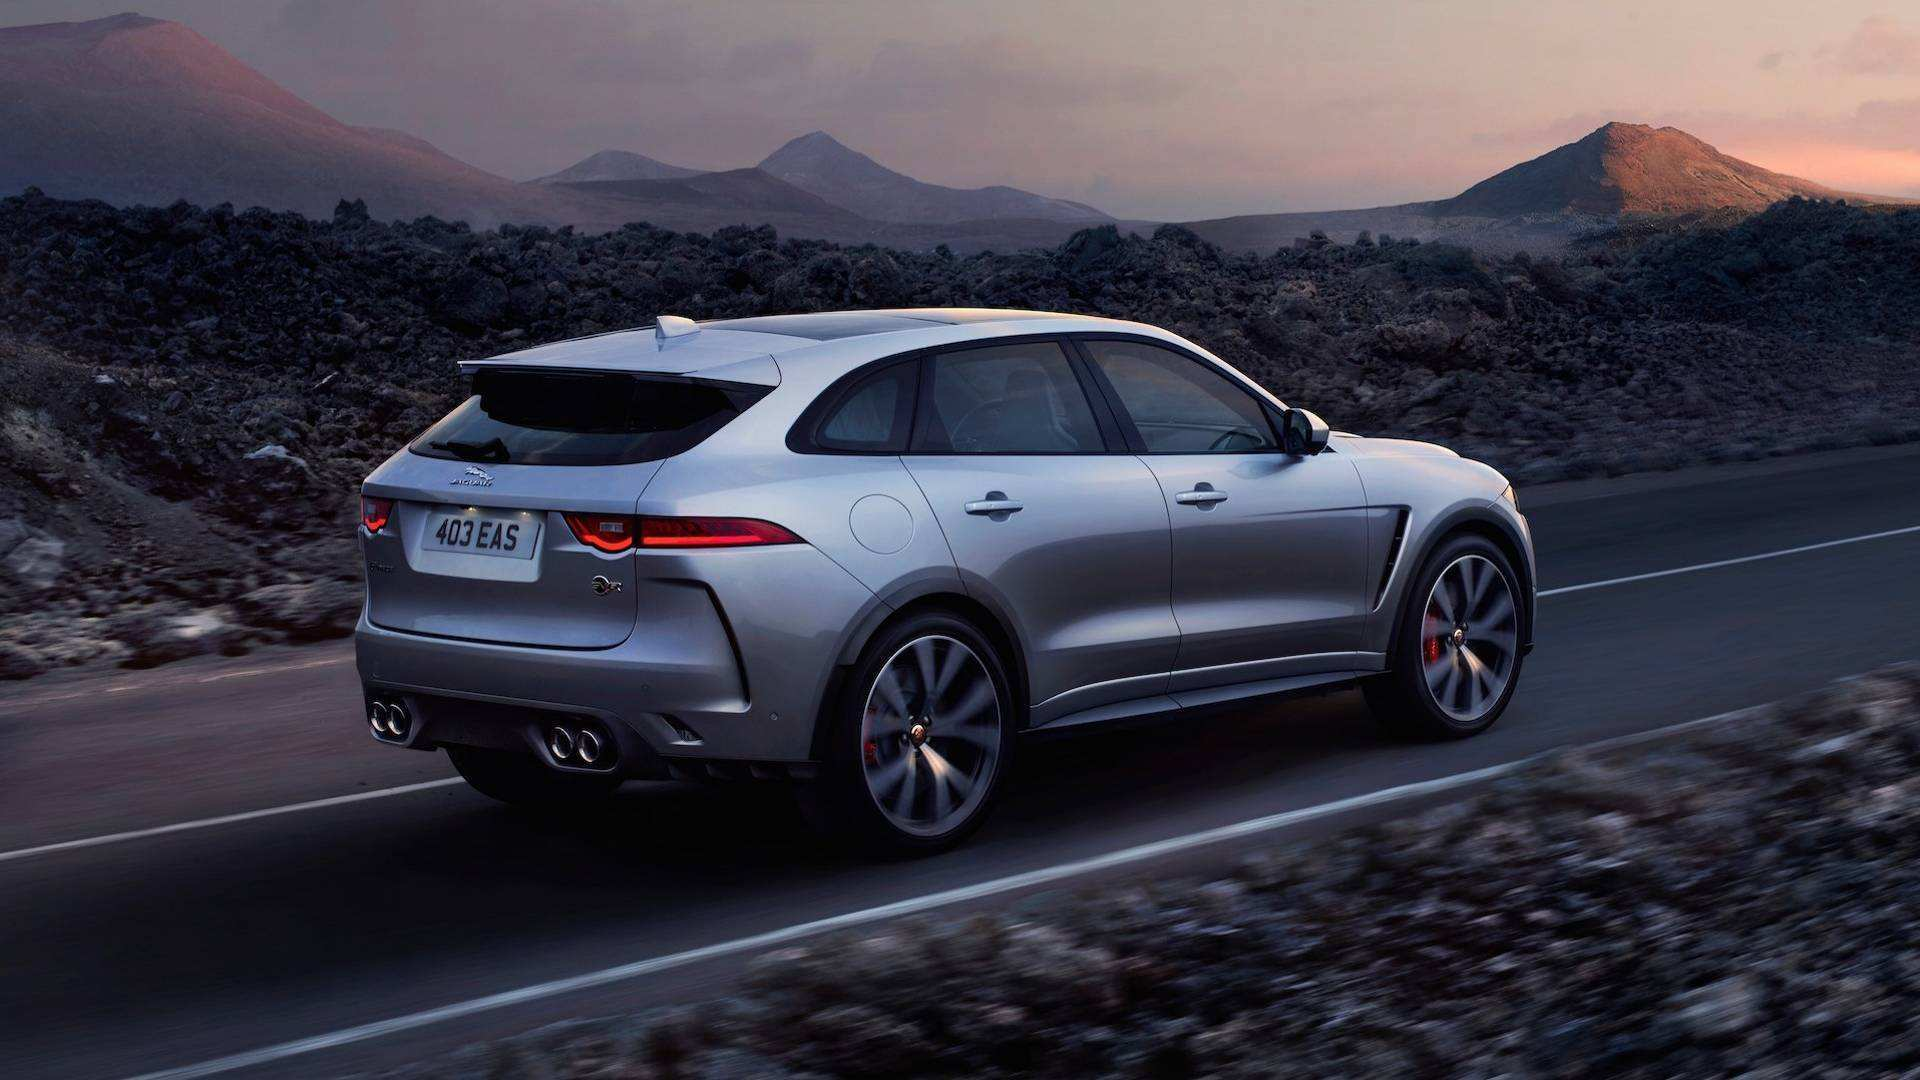 30 The Best 2019 Jaguar Suv Style